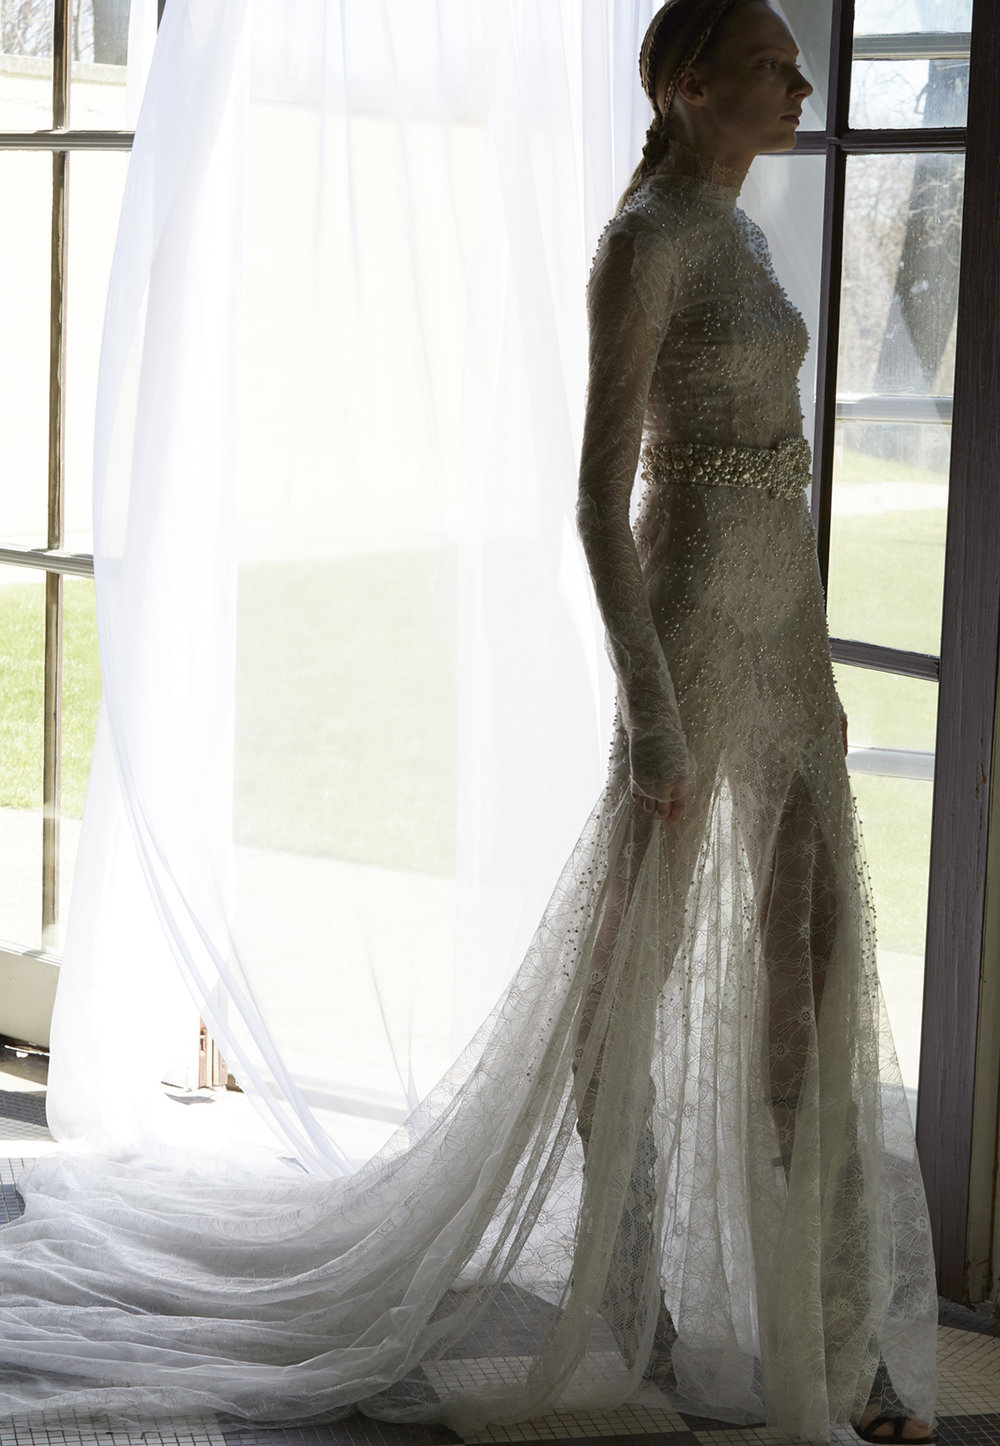 Season: Spring 2017    Gown name: Wavely    Description: A long sleeve, lace gown with applique lace details on French tulle overlay.